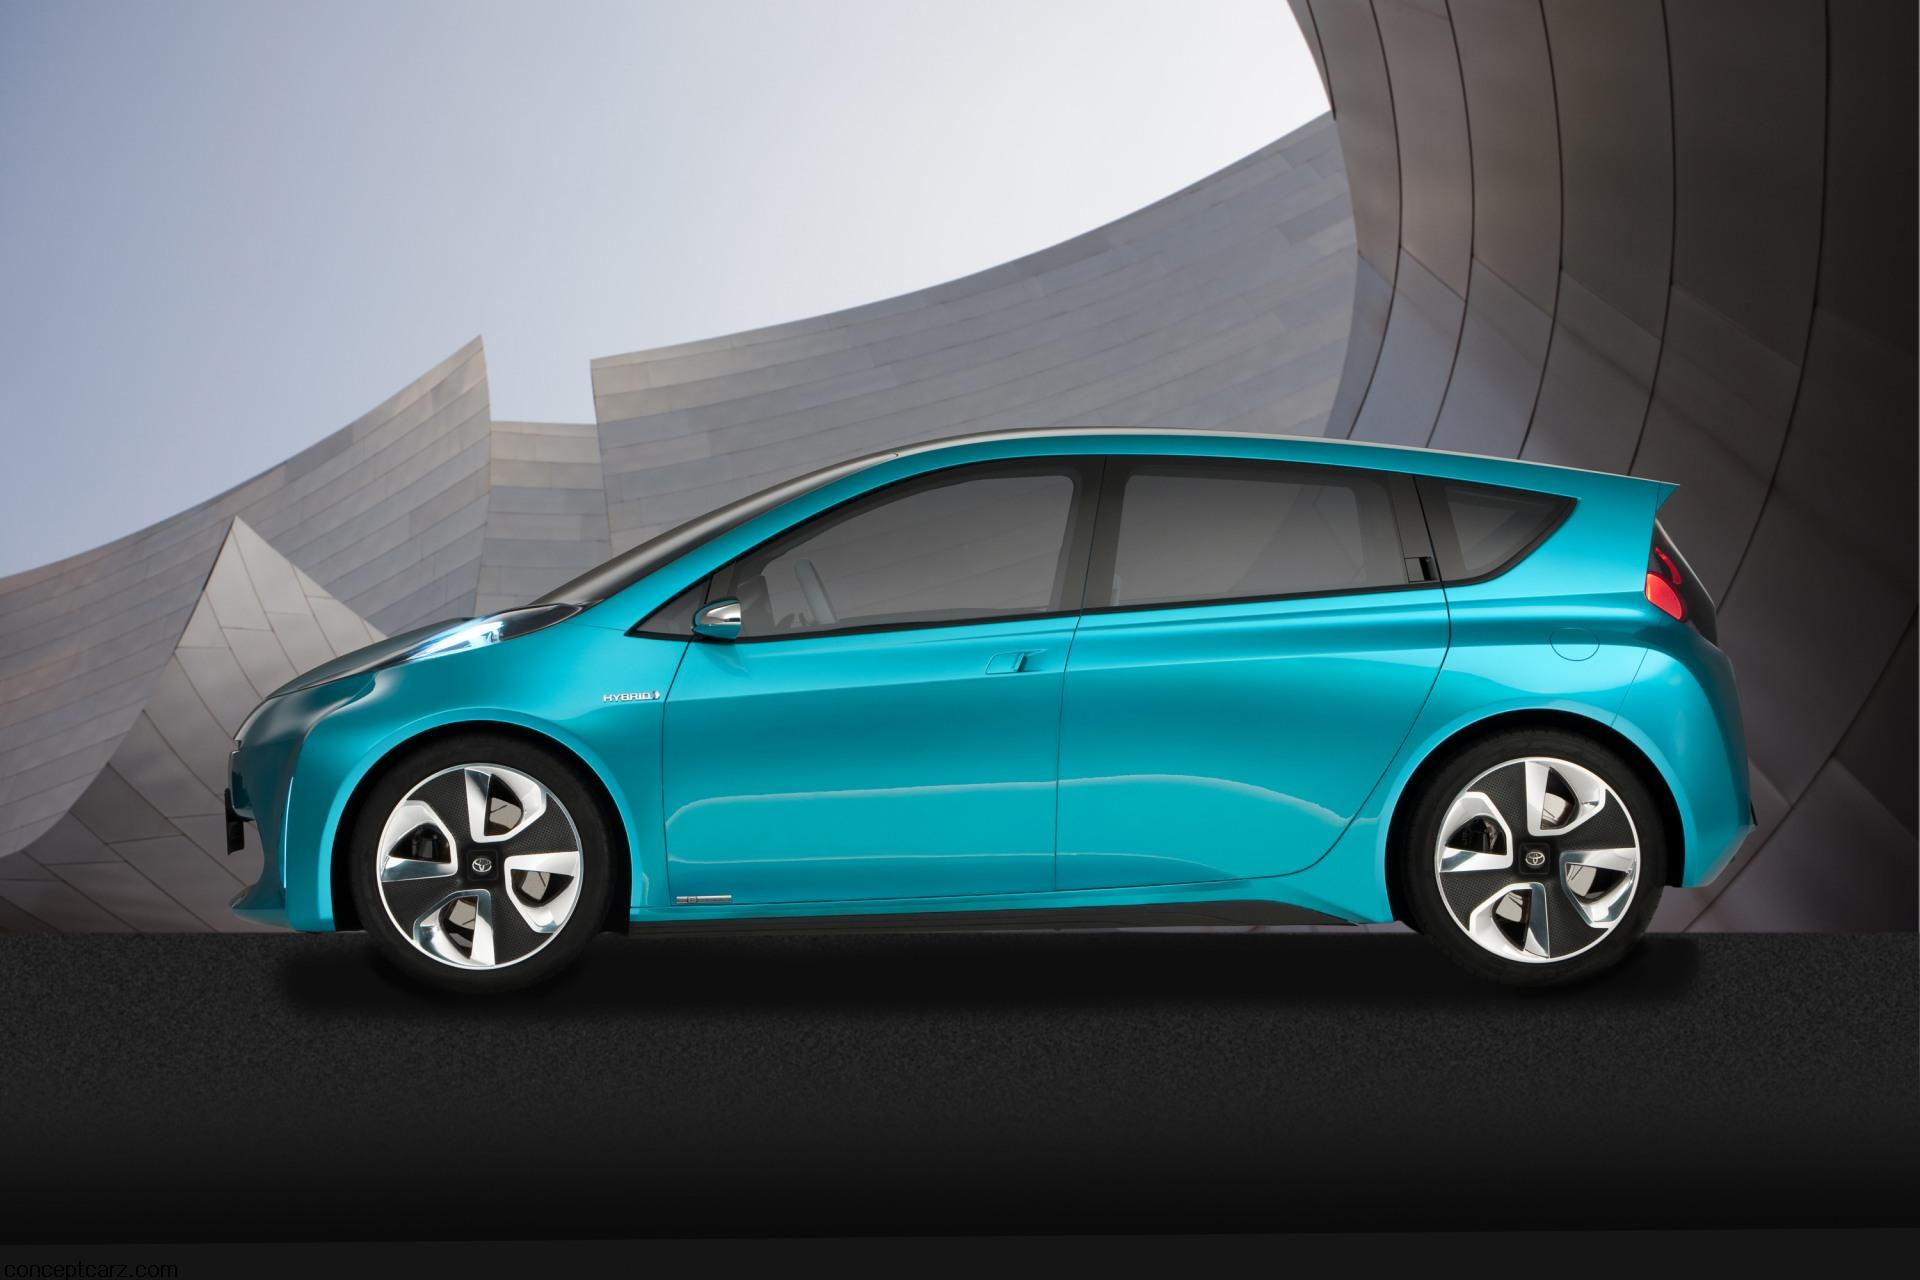 2011 Toyota Prius c Concept News and Information, Research, and Pricing